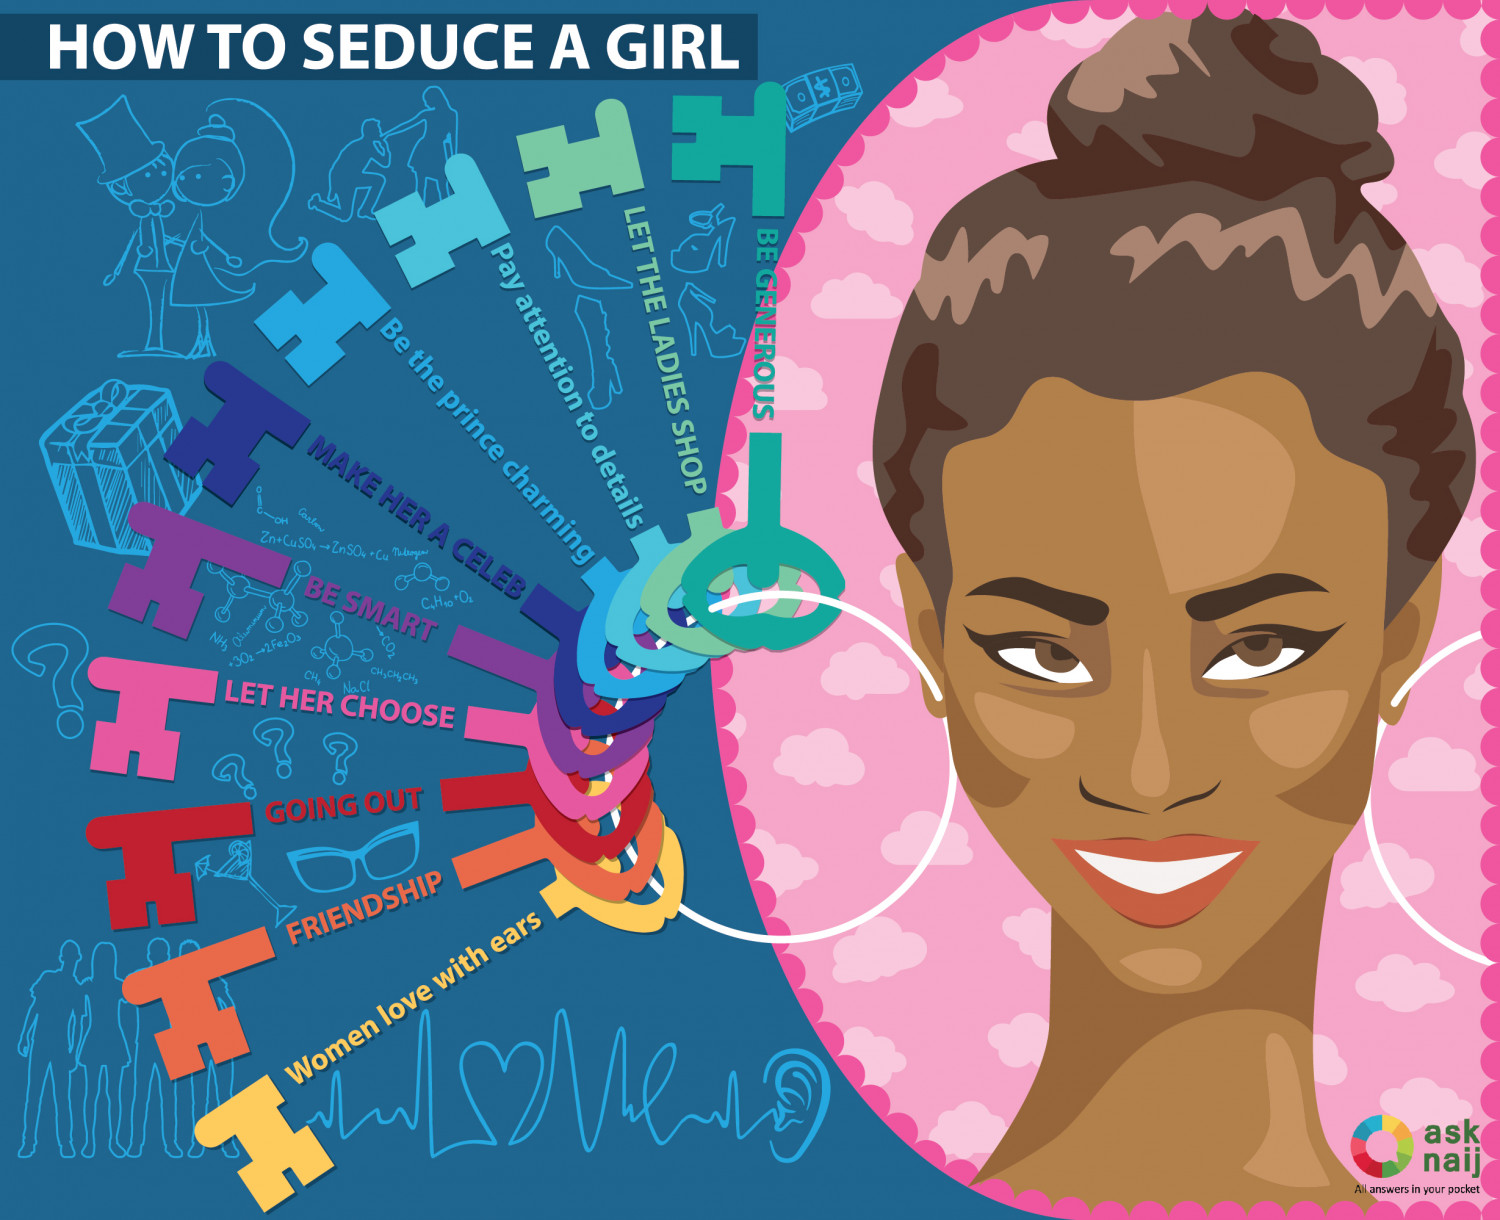 How to seduce a girl - List of 10 Perfect ways Infographic